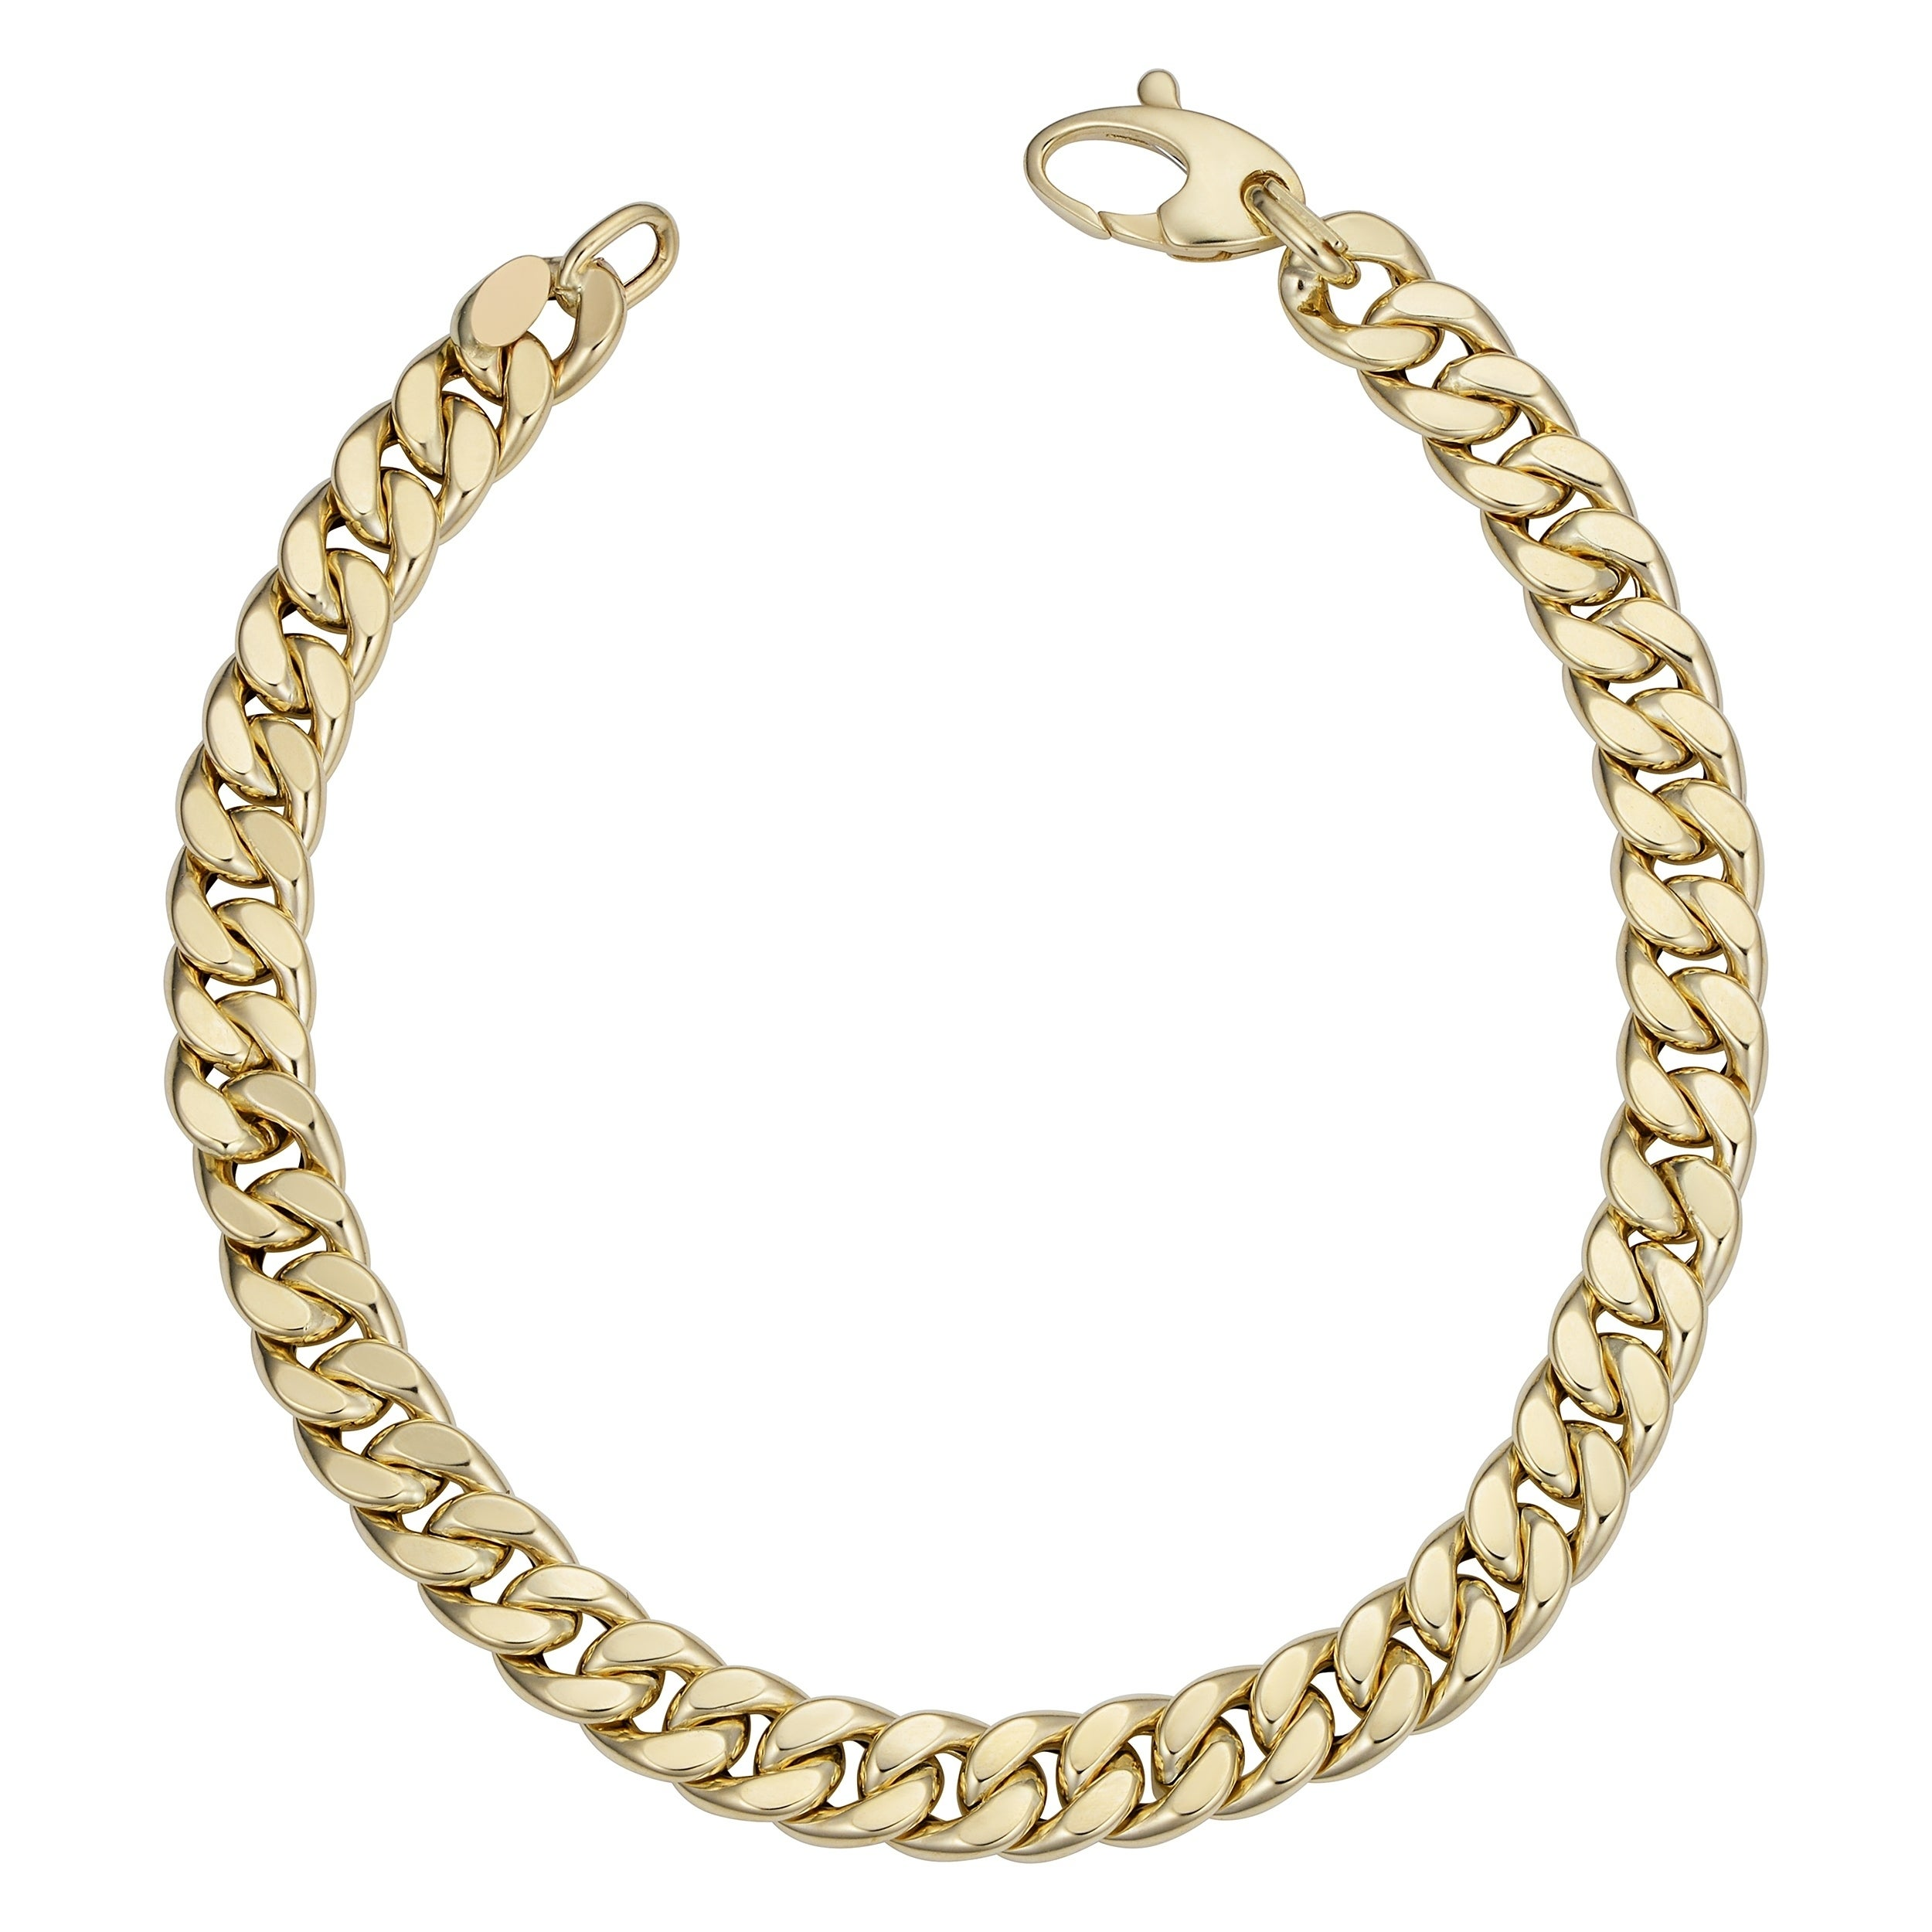 Fremada Italian 14k Yellow Gold Curb Link Bracelet 6 Millimeters Wide X 8 5 Inches Long On Free Shipping Today 21851244